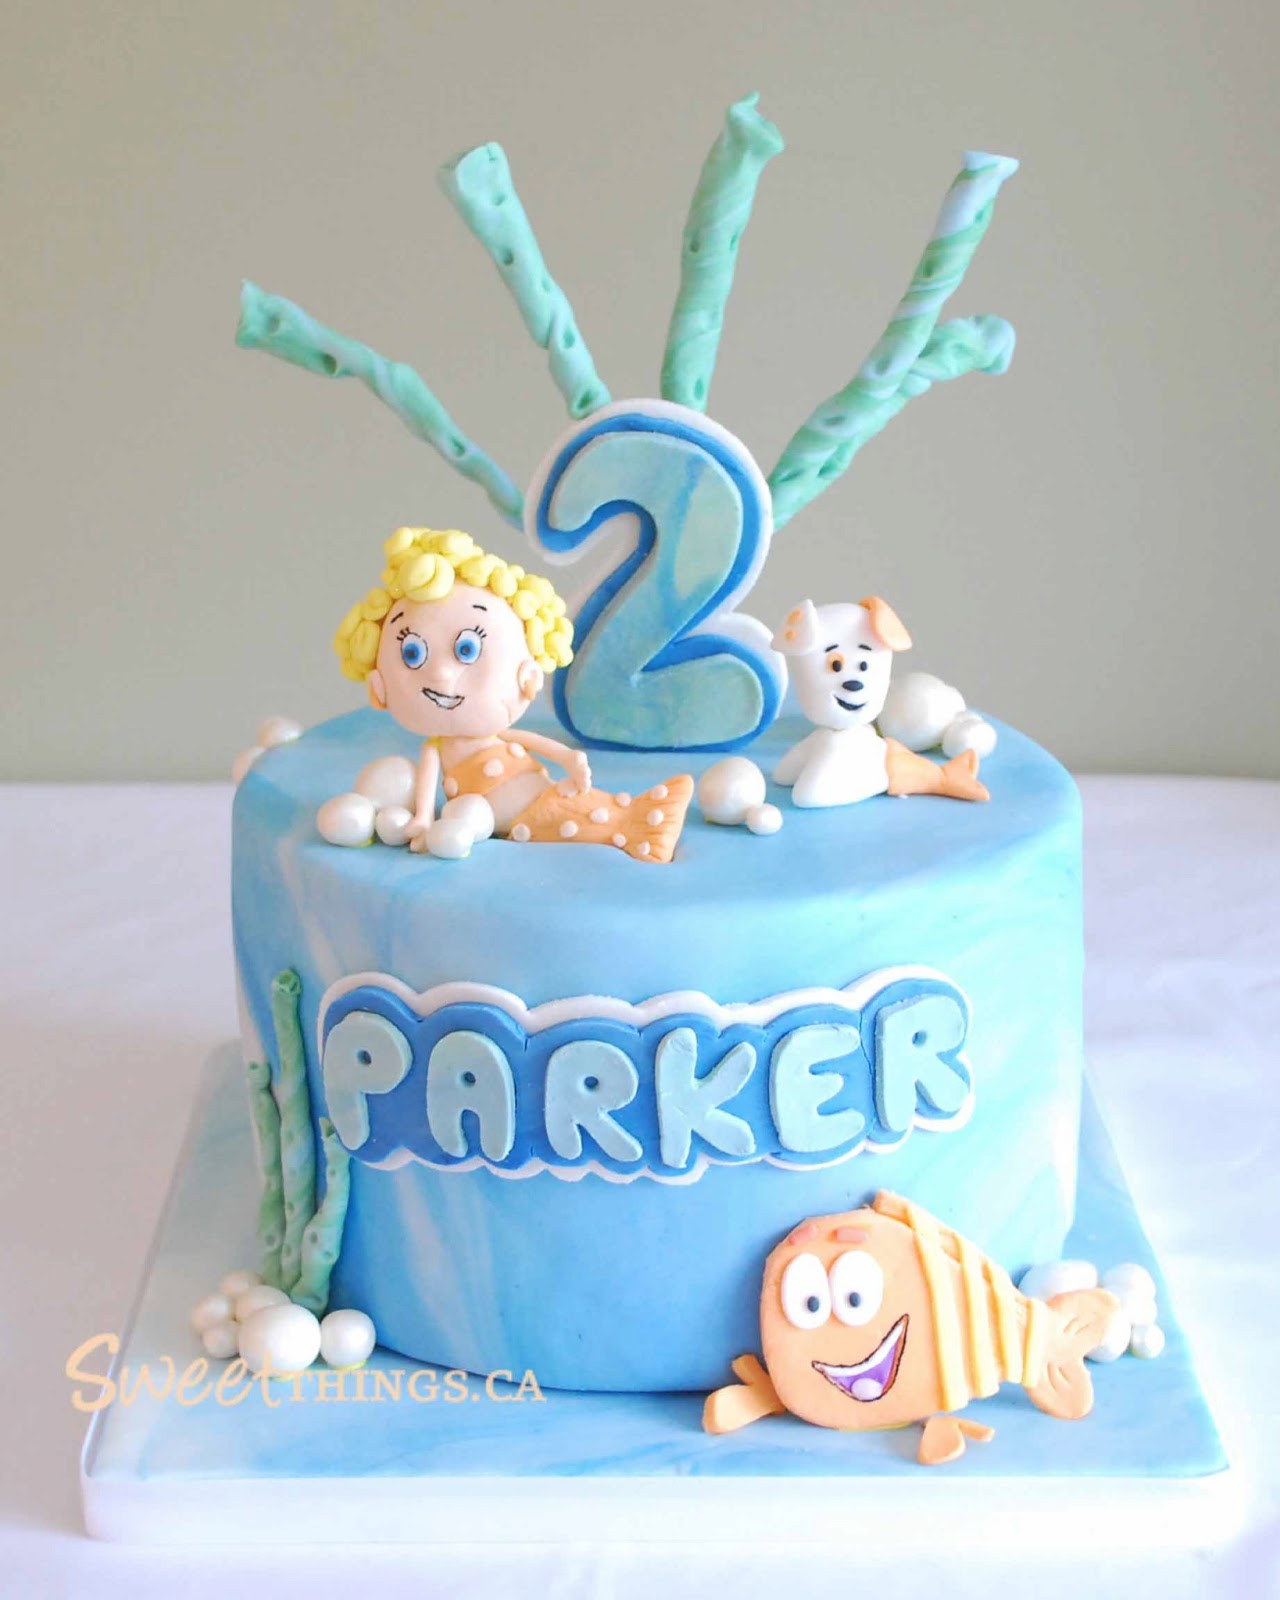 Sweetthings 2nd Birthday Cake Bubble Guppies Cake